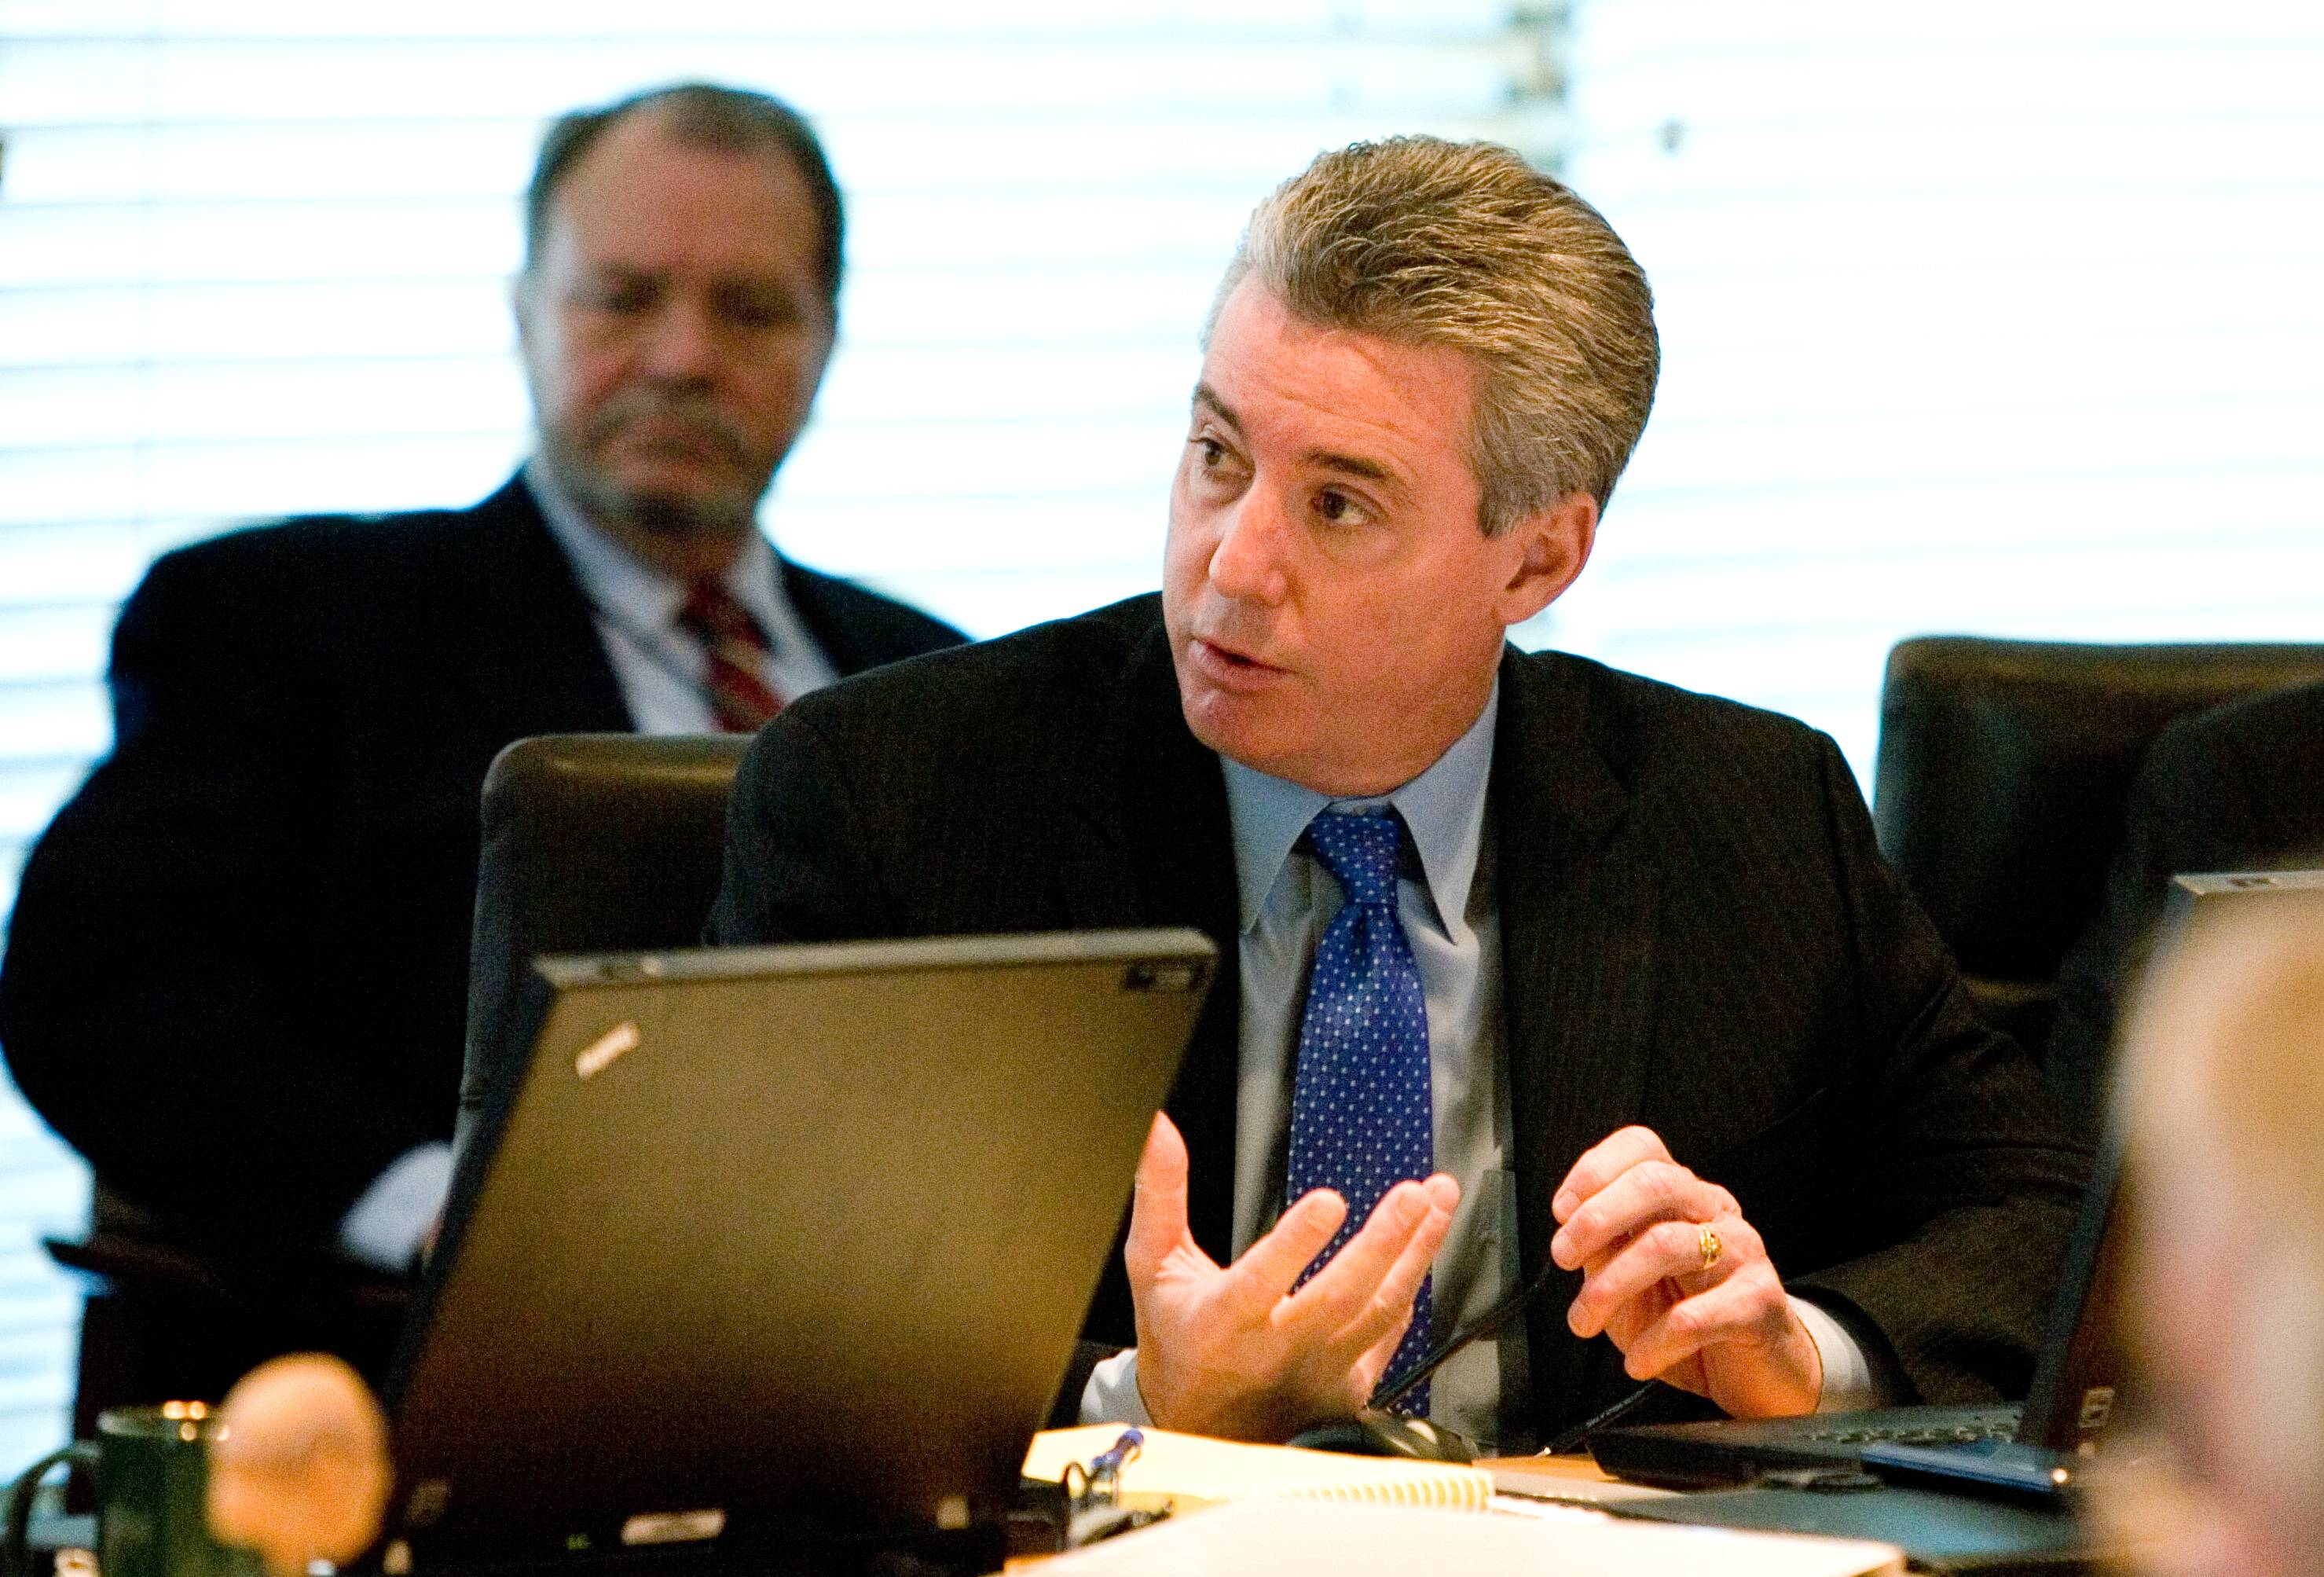 Union official James Sweeney is expected to be named to the Illinois tollway board this week. Sweeney of Chicago previously served on the tollway from 2011 to 2017.